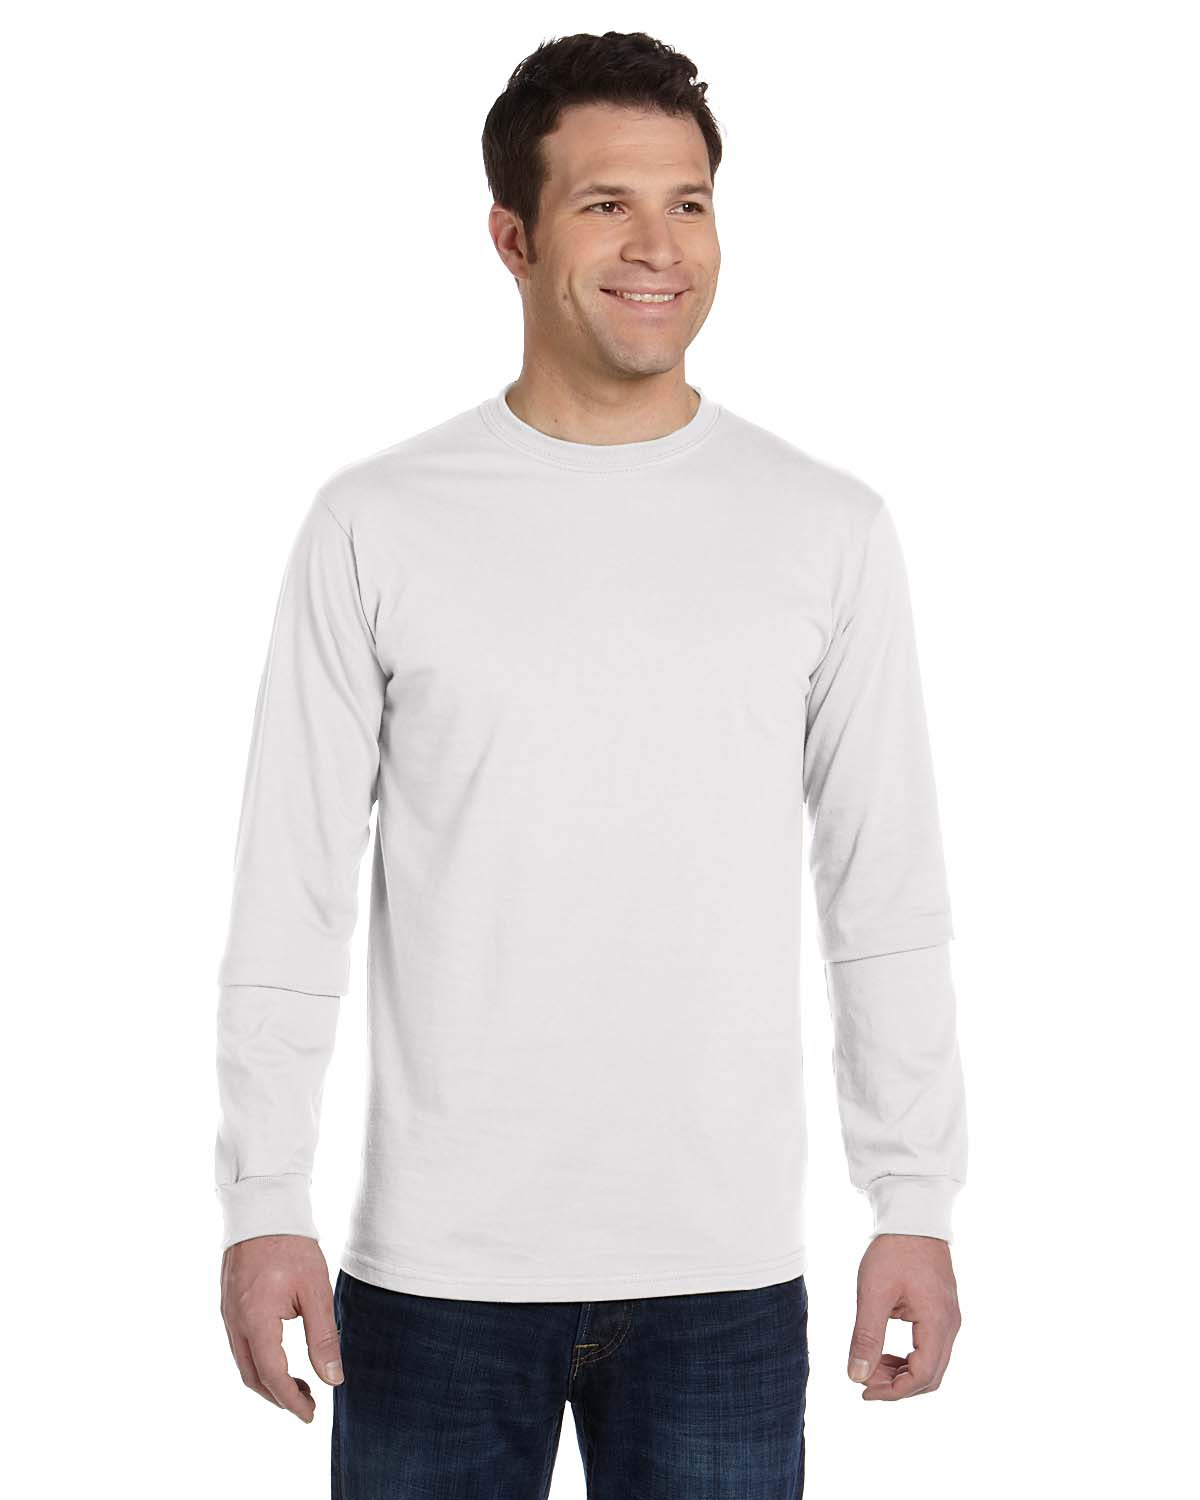 Men 39 s organic cotton ring spun long sleeve t shirt for Mens long sleeve white t shirt